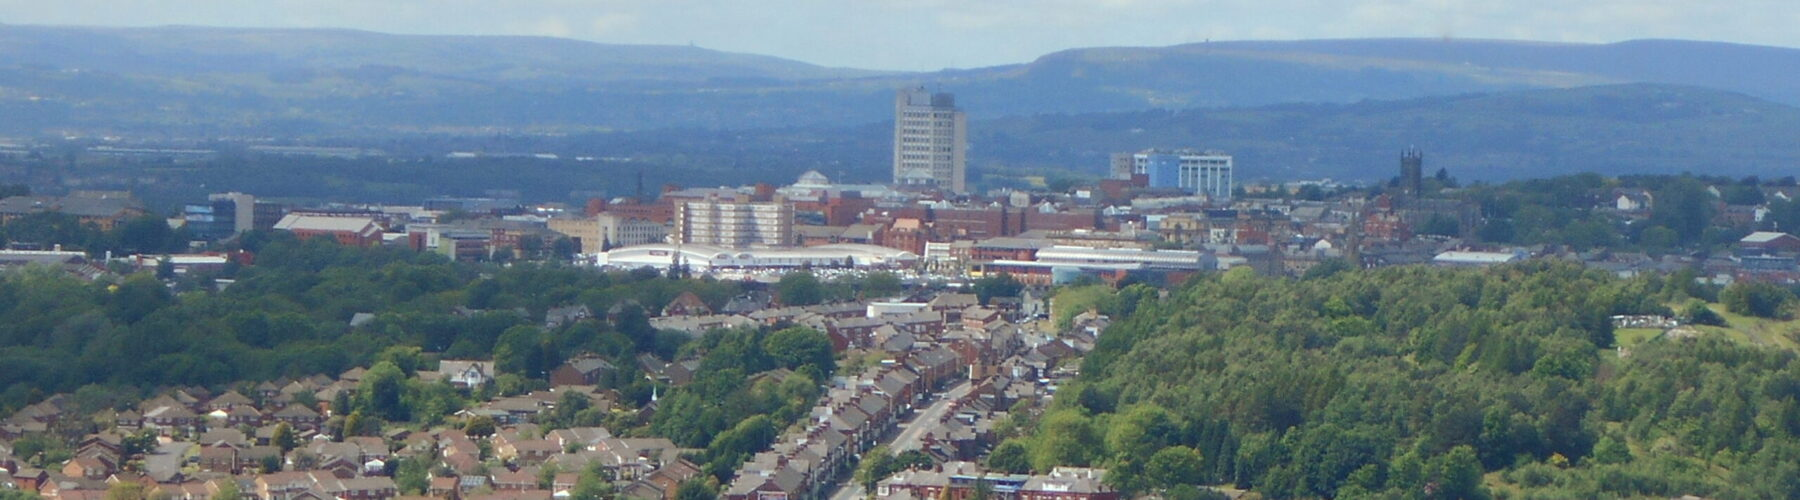 Oldham_town_centre_closeup_from_Hartshead_Pike